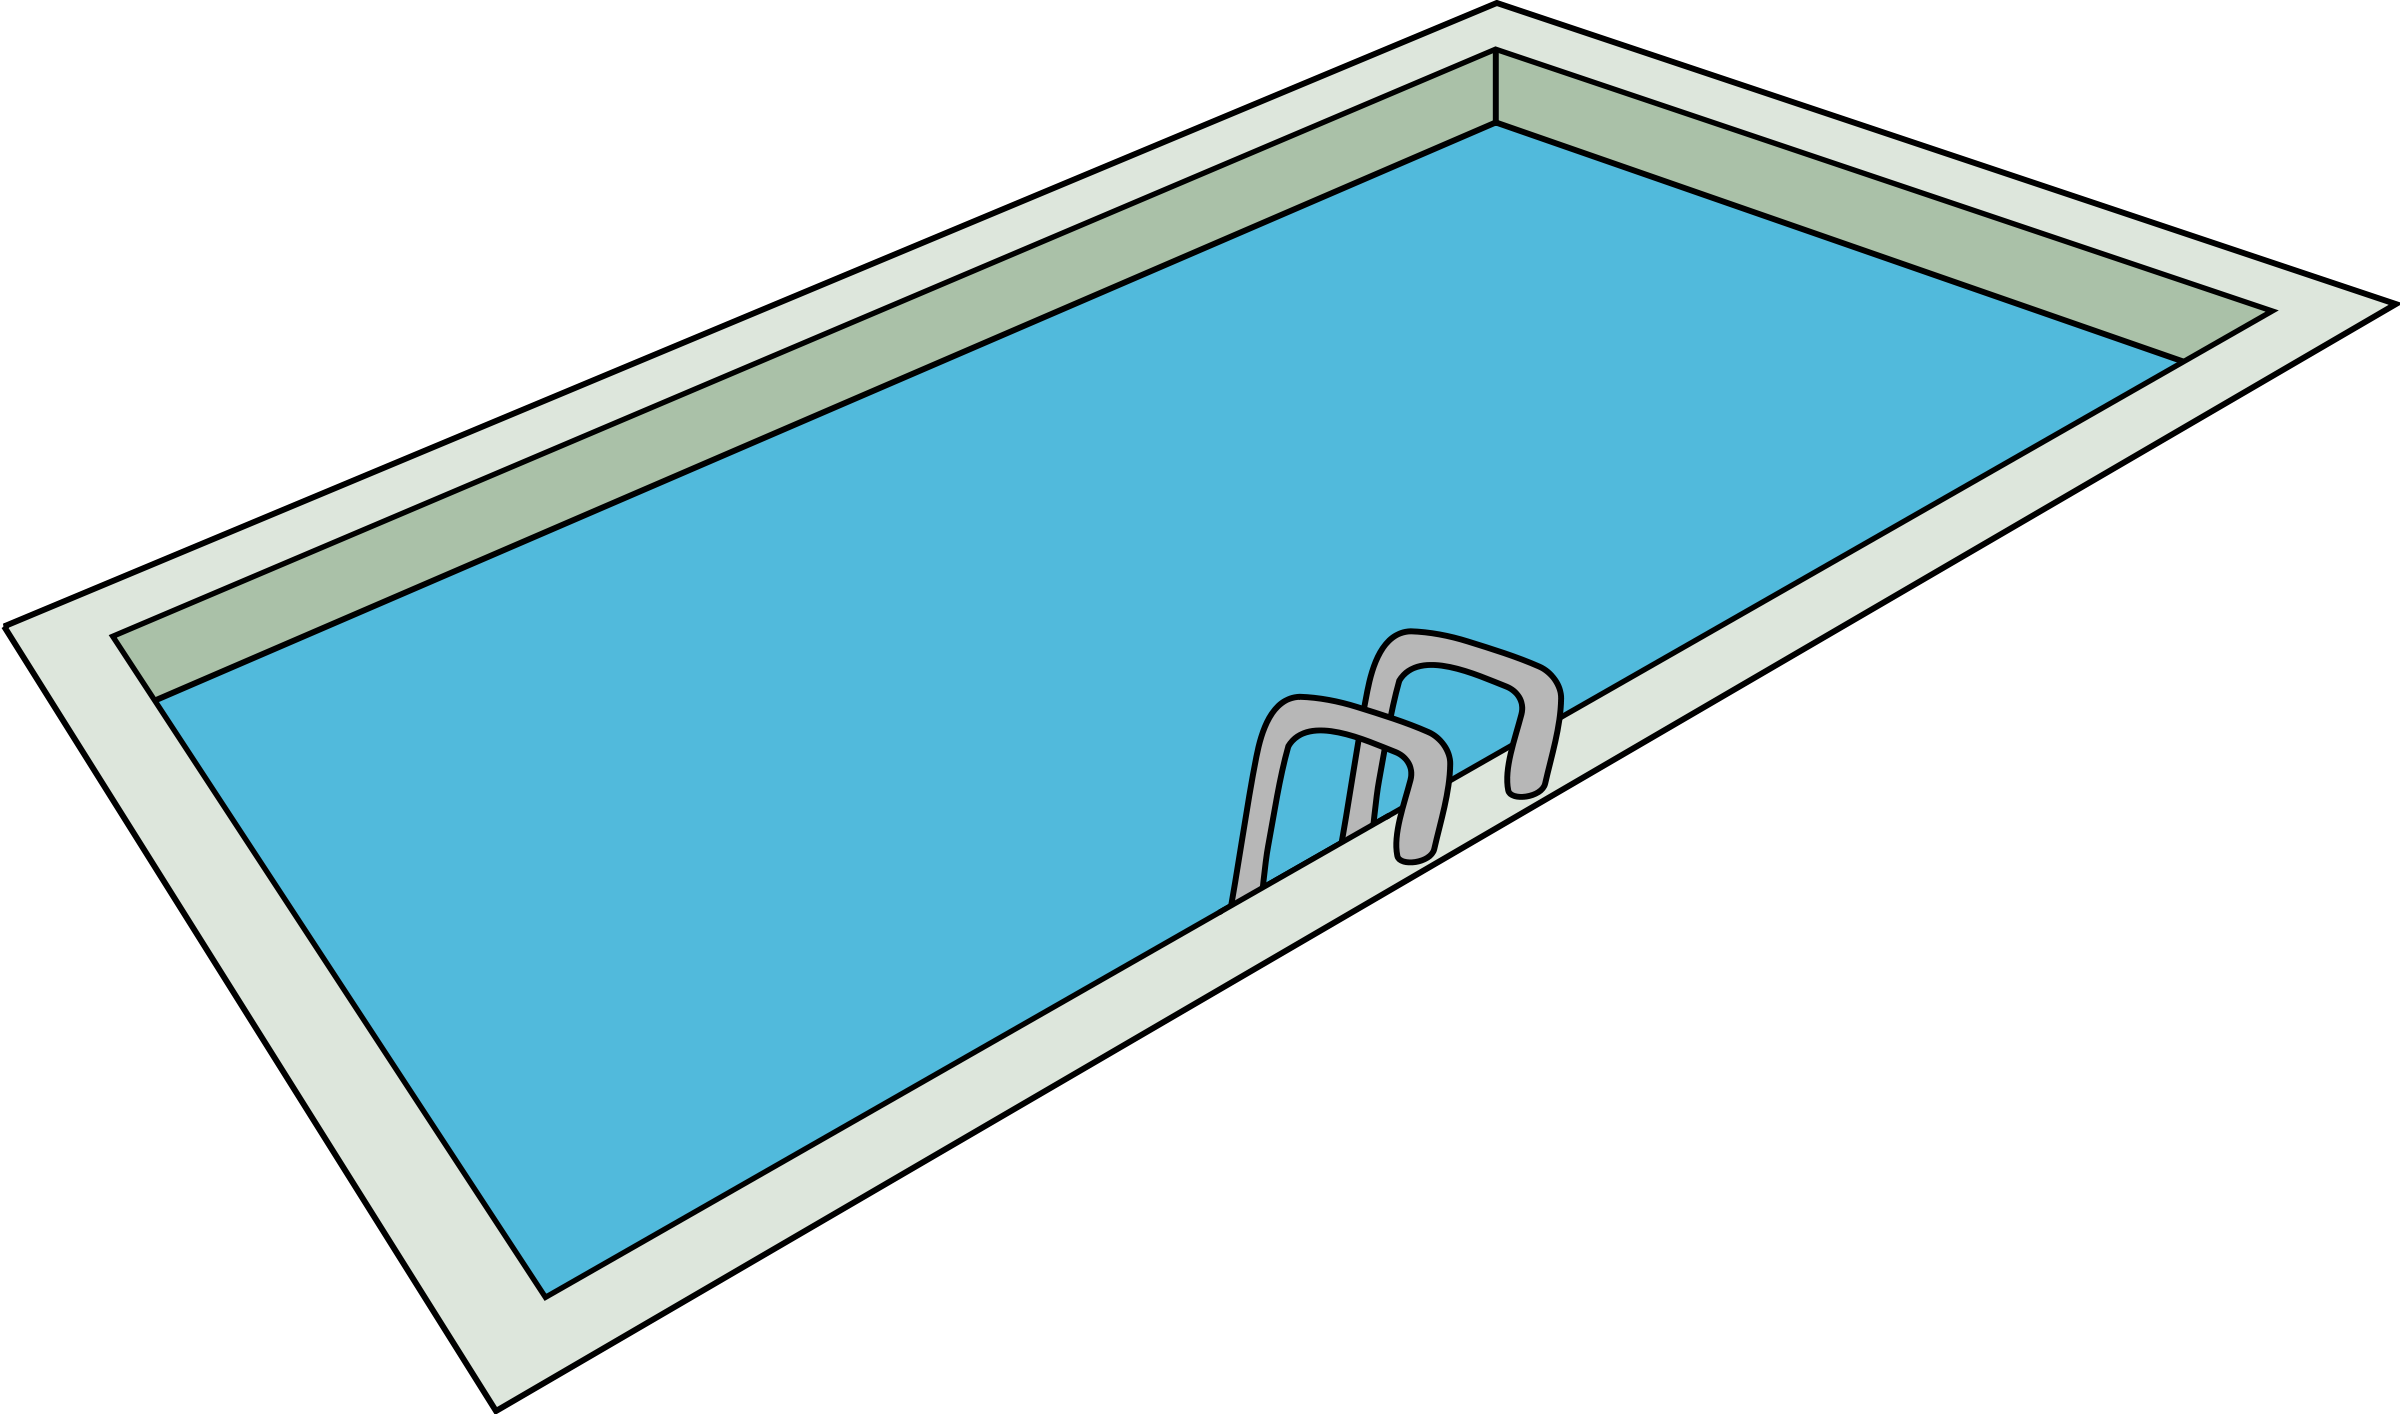 pool clipart - Swimming Pool Clipart